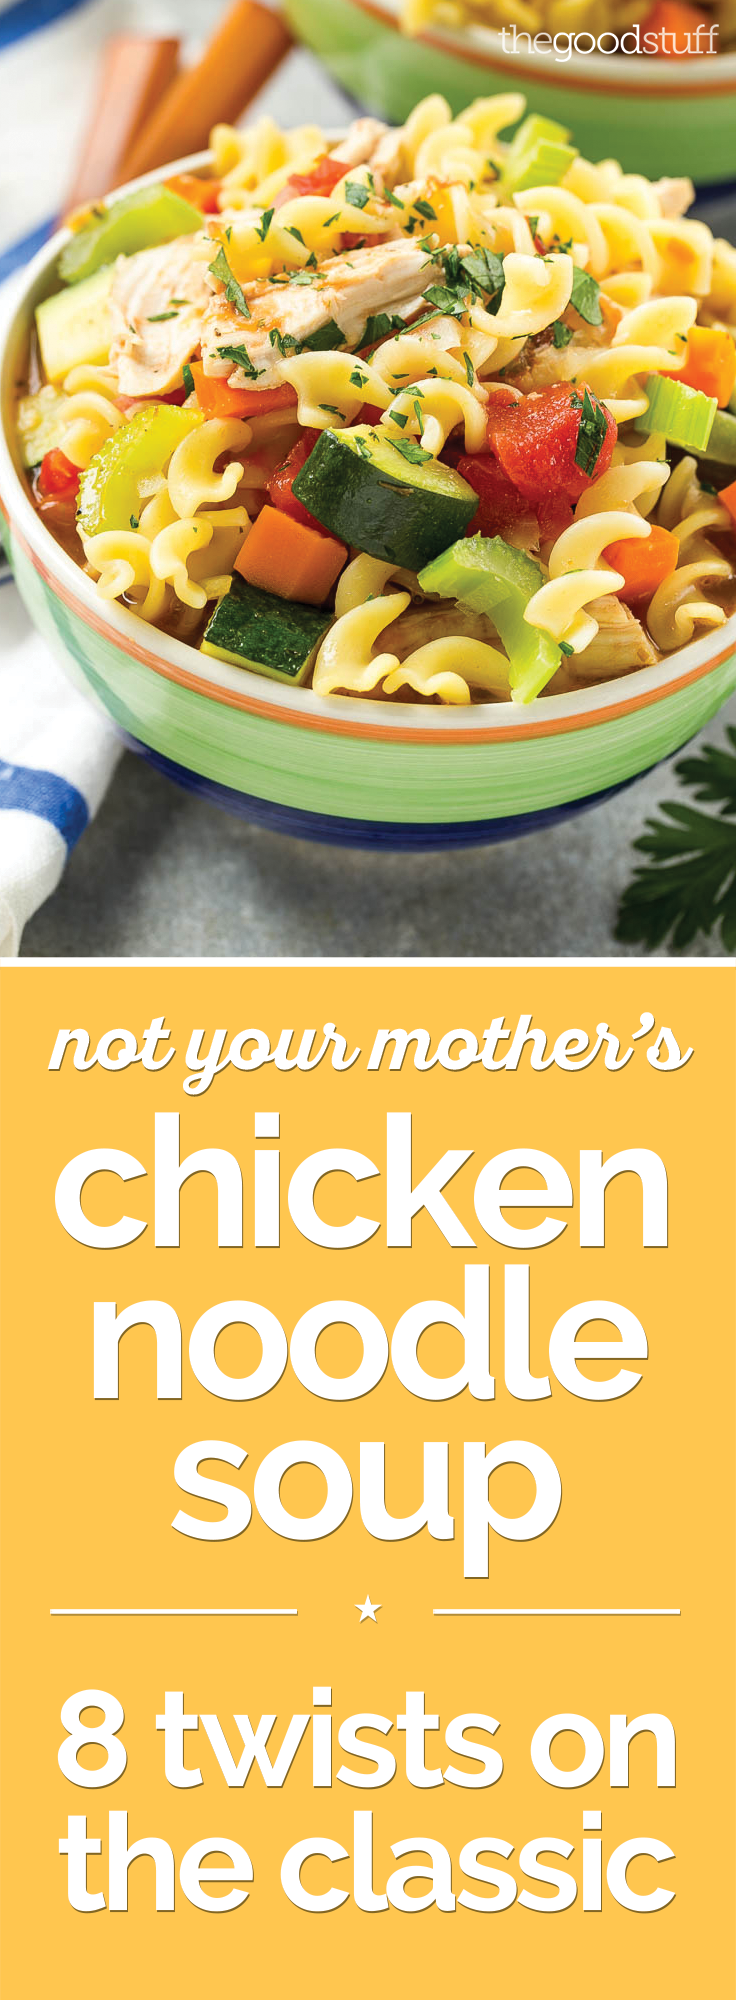 8 Tasty Twists on Classic Chicken Noodle Soup Recipes | thegoodstuff